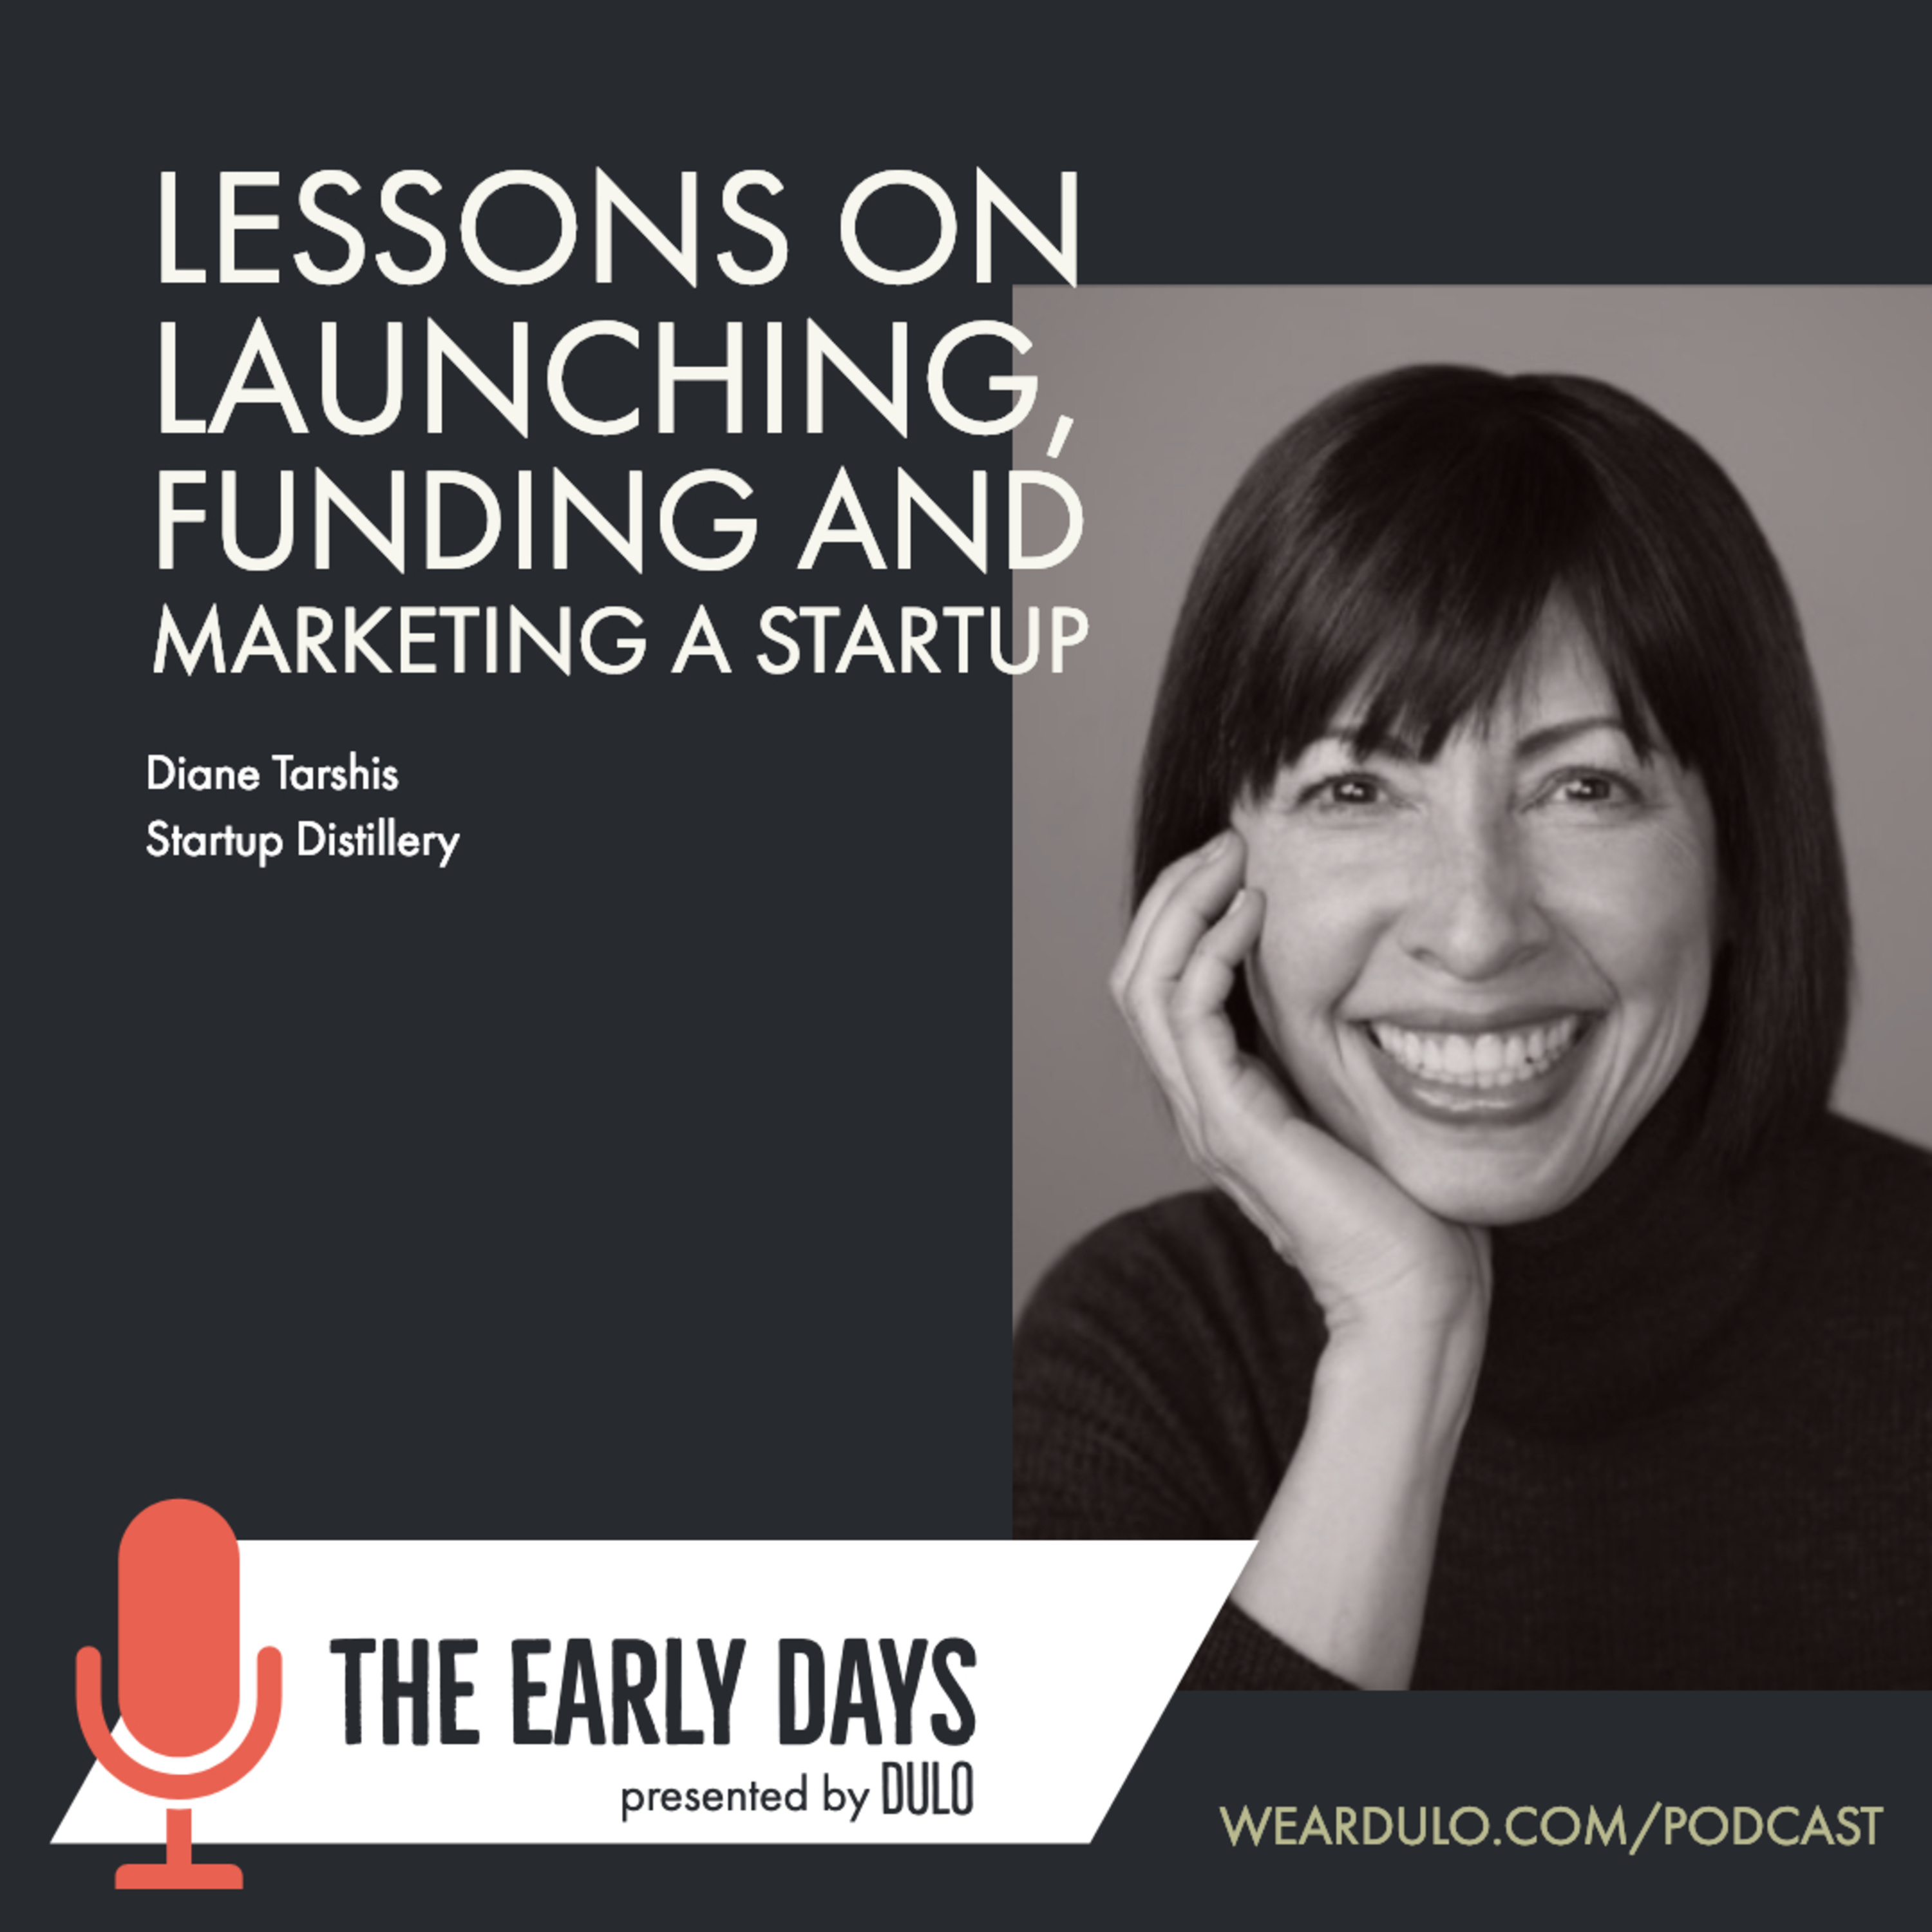 Lessons on launching, funding and marketing a startup | The Early Days by DULO (S3E3)